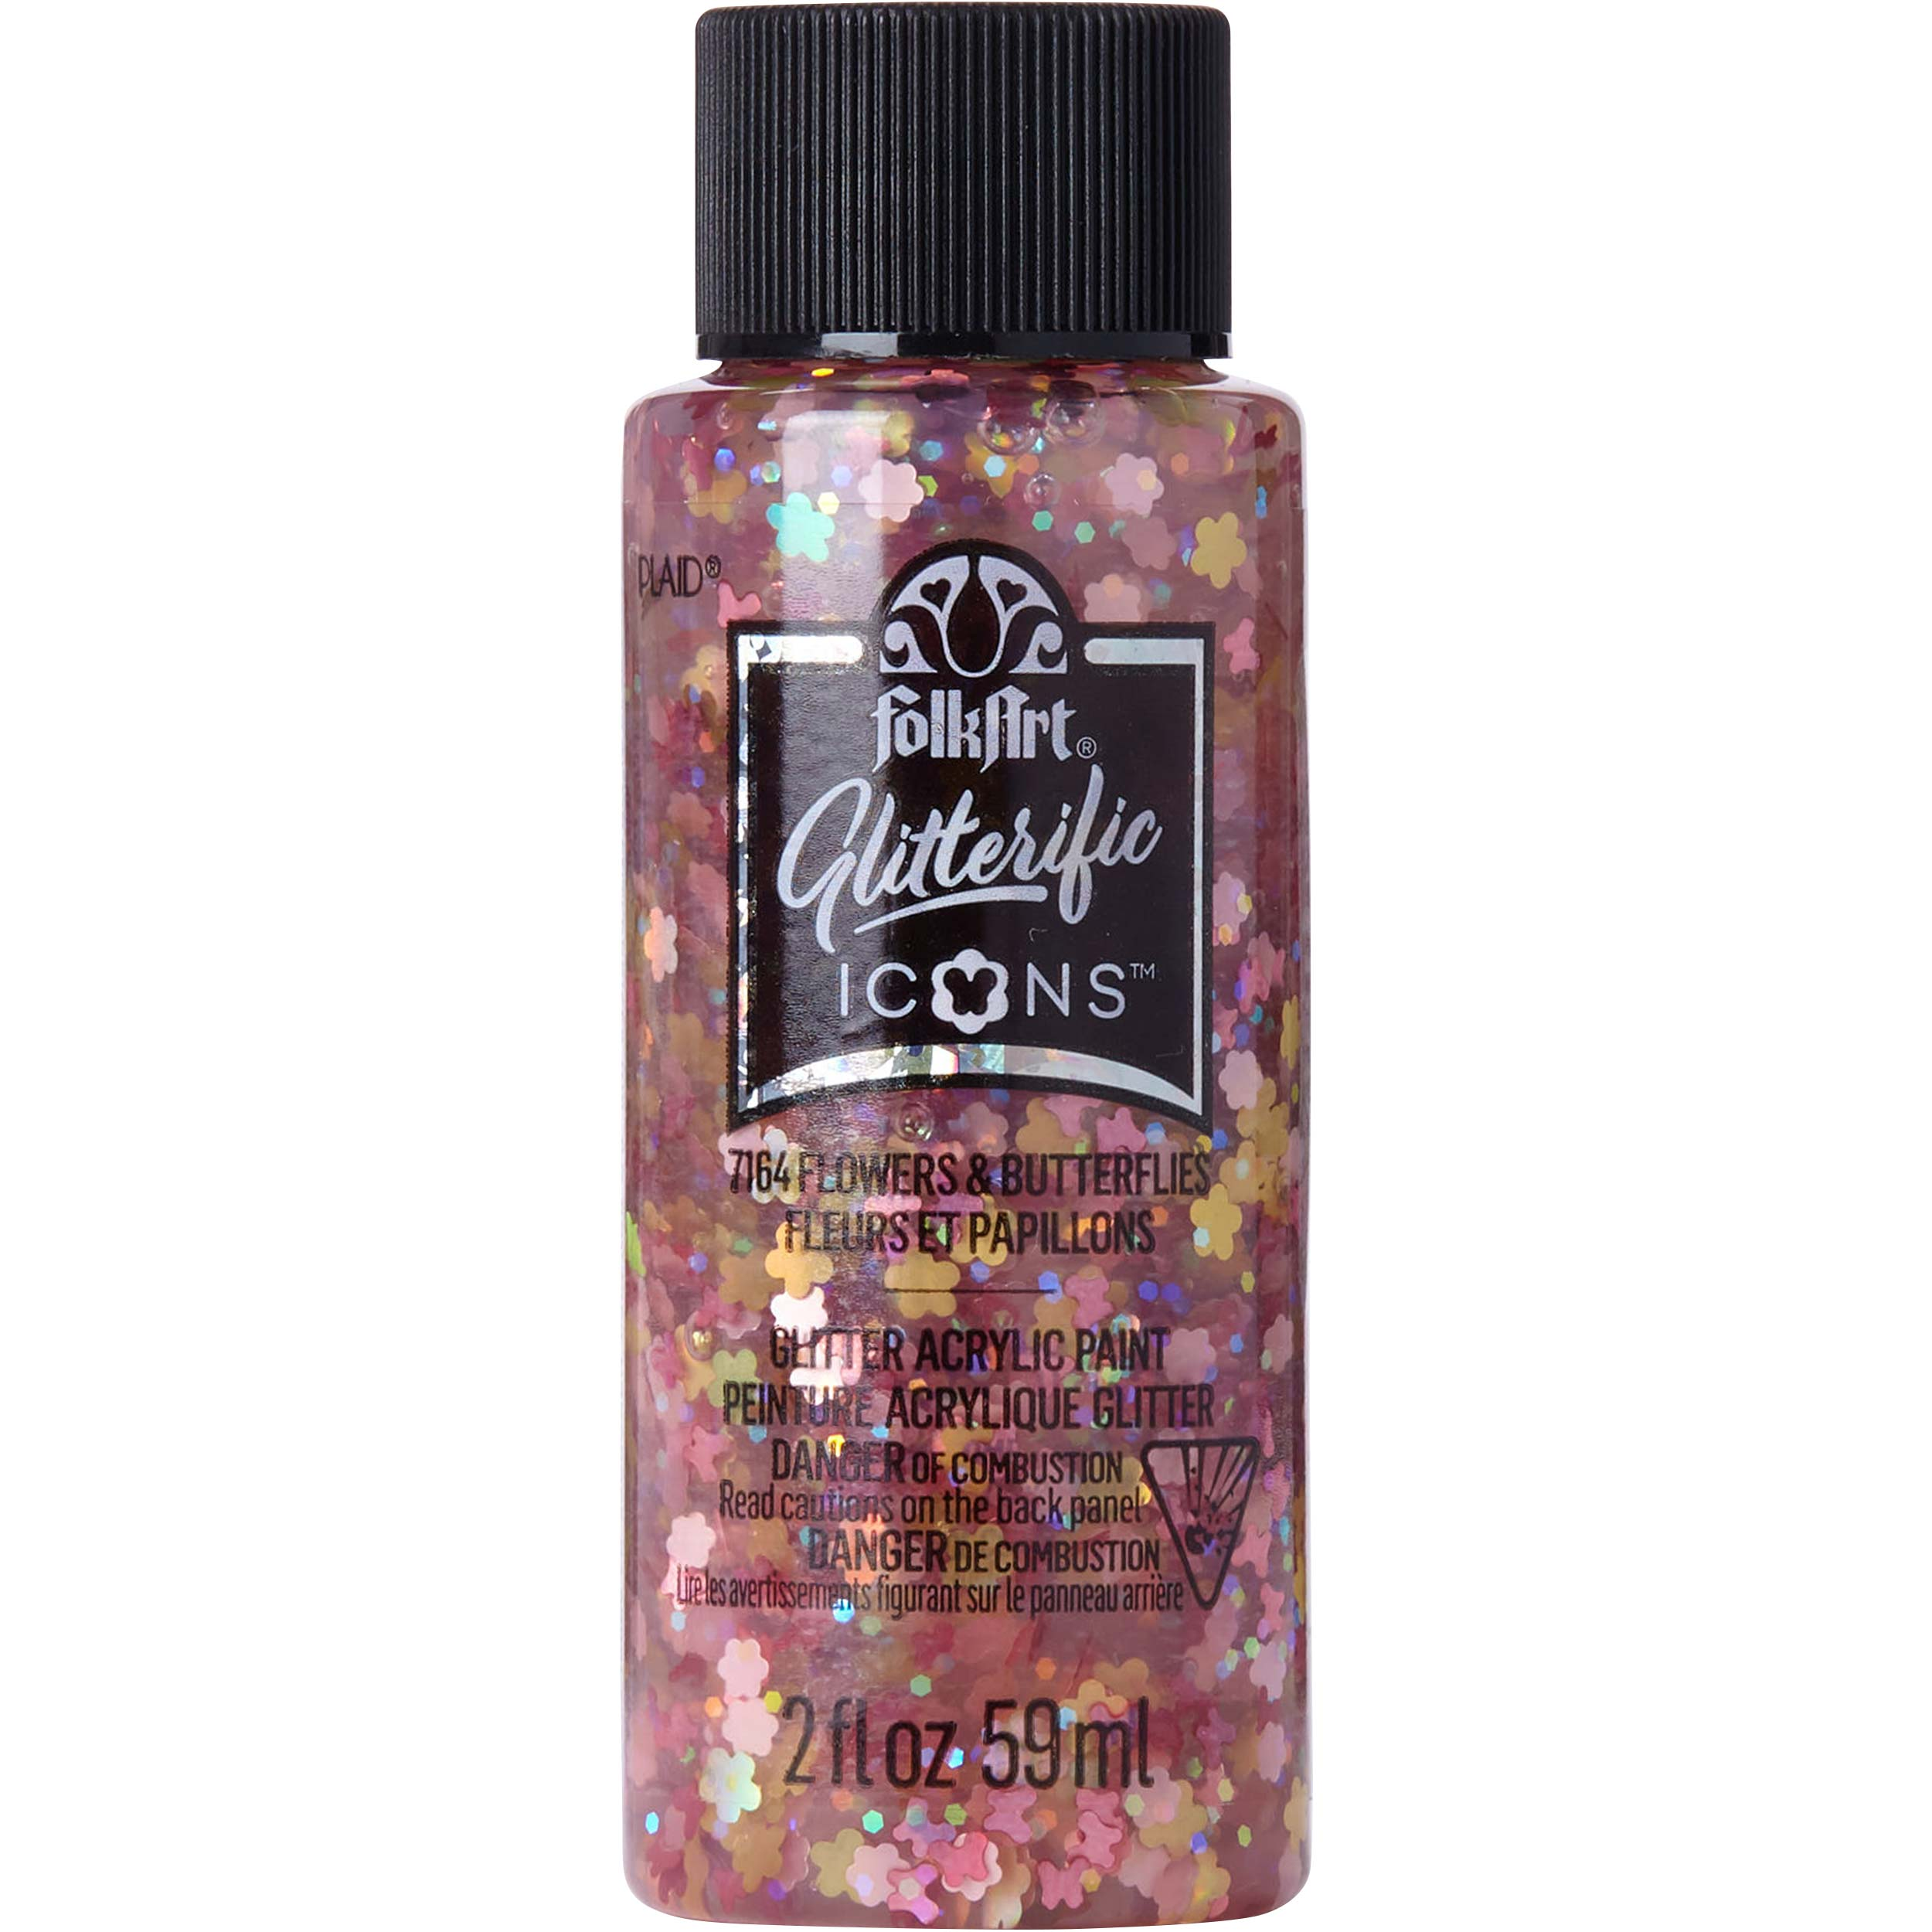 FolkArt ® Glitterific™ Icons Acrylic Paint - Flowers and Butterflies, 2 oz. - 7164